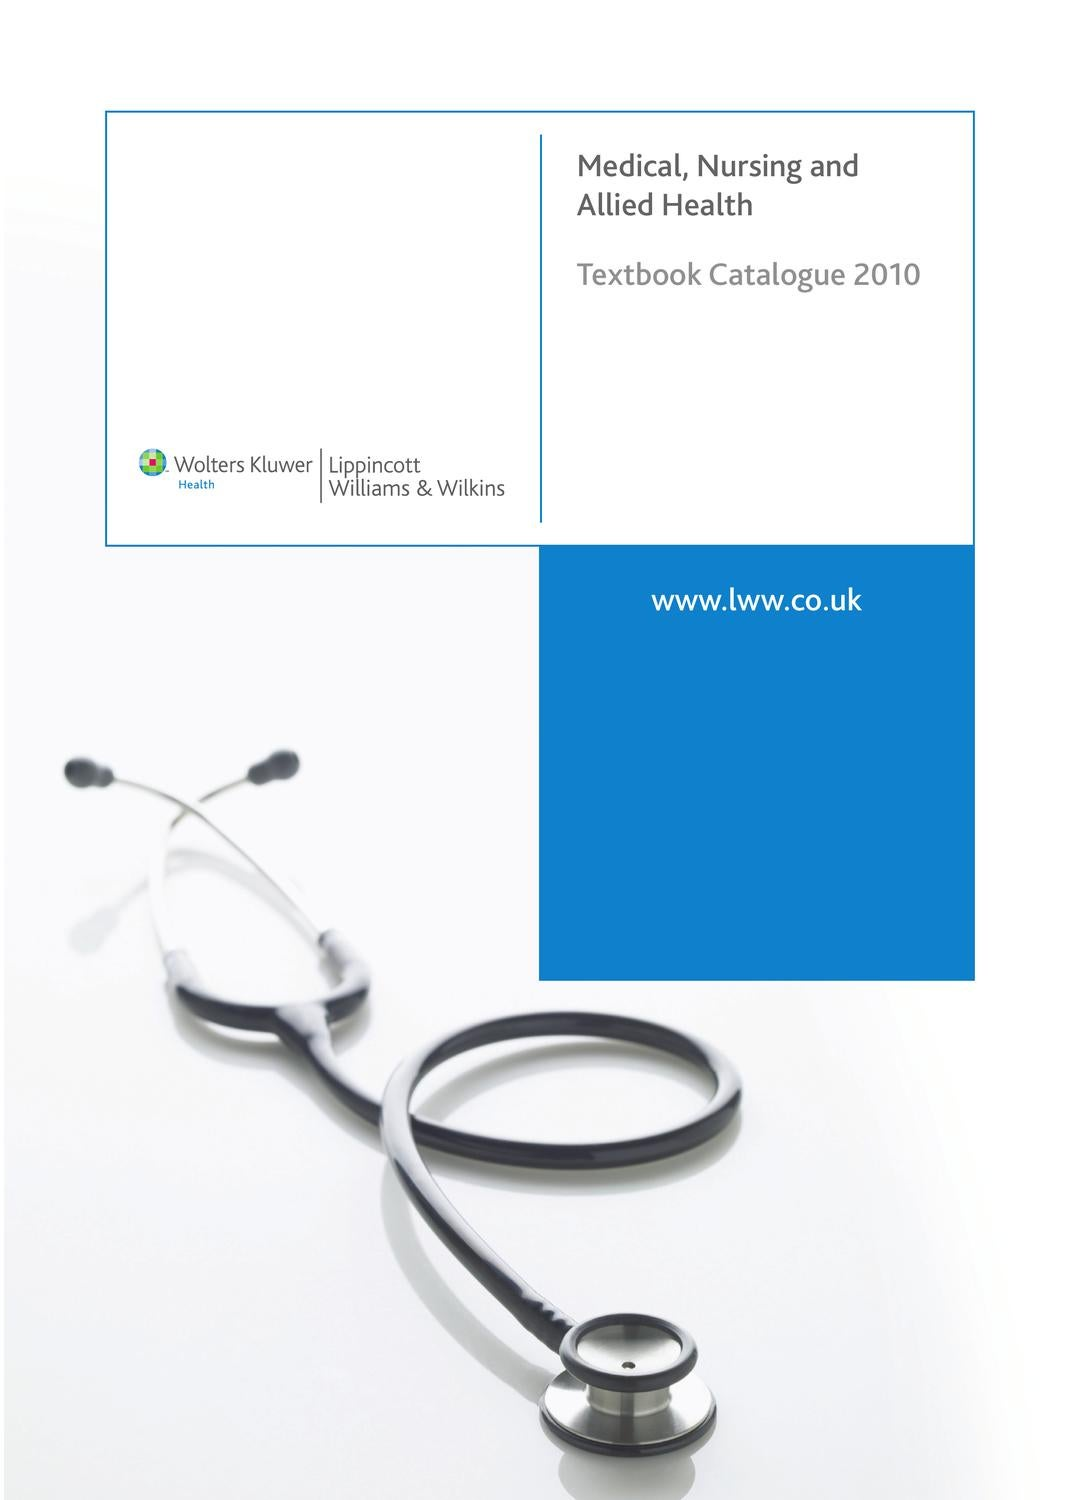 Workbooks workbook to accompany medical assisting answers : LWW 2010 Textbook Catalogue by Lippincott Williams and Wilkins - issuu